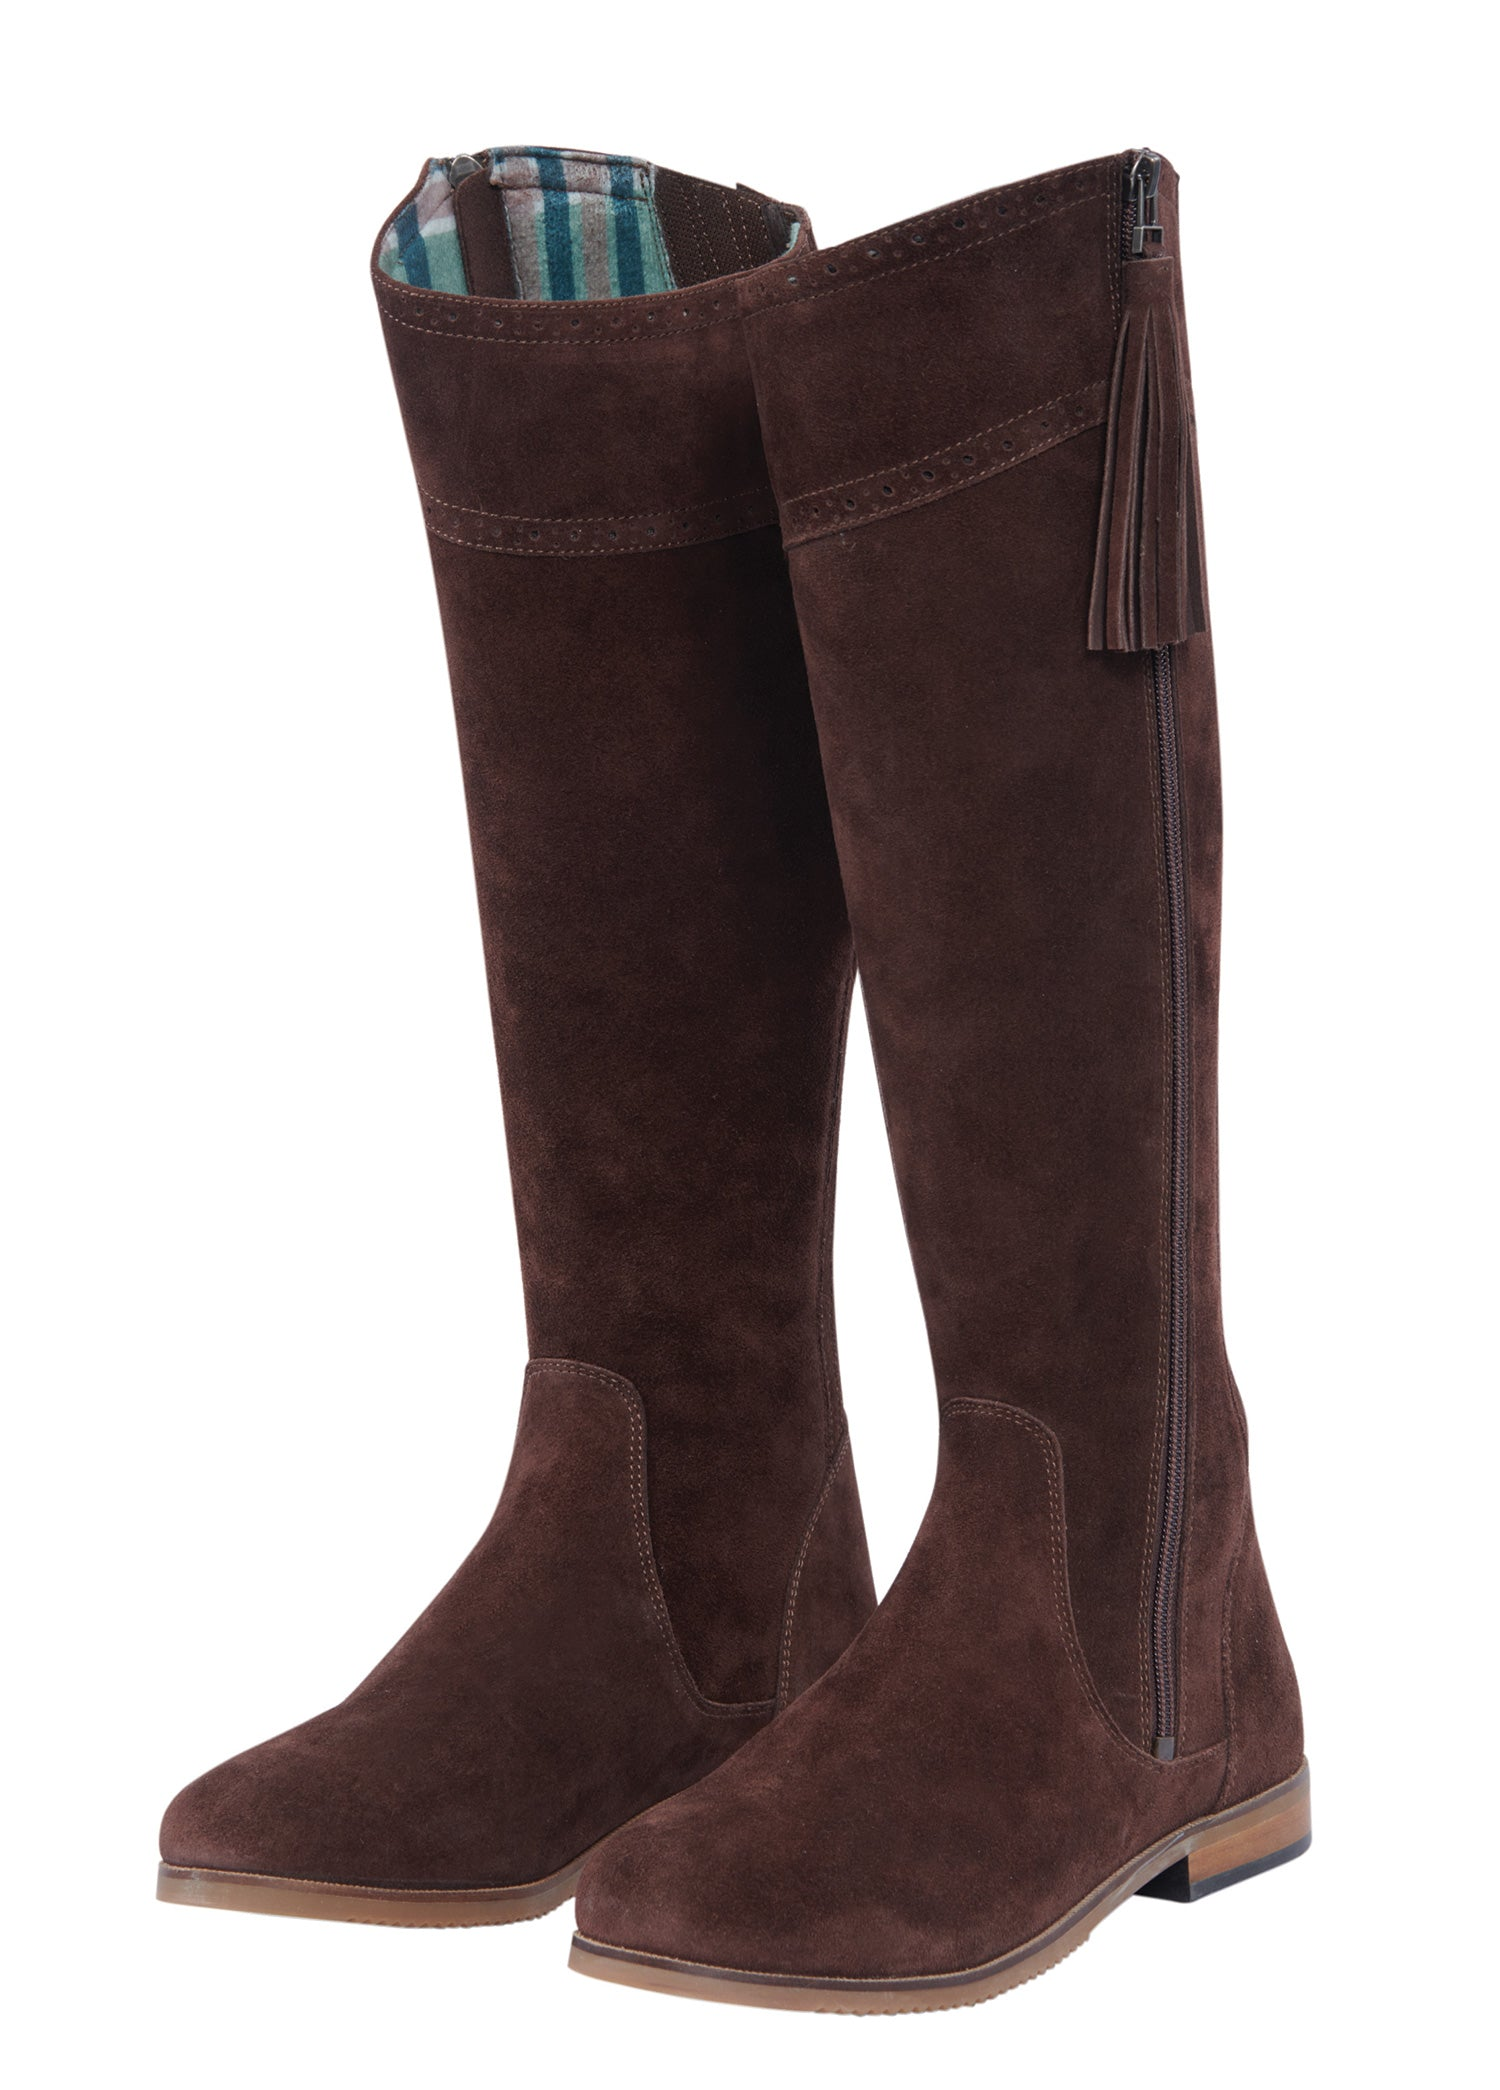 Chocolate Brown Dublin Kalmar SD Tall Boots